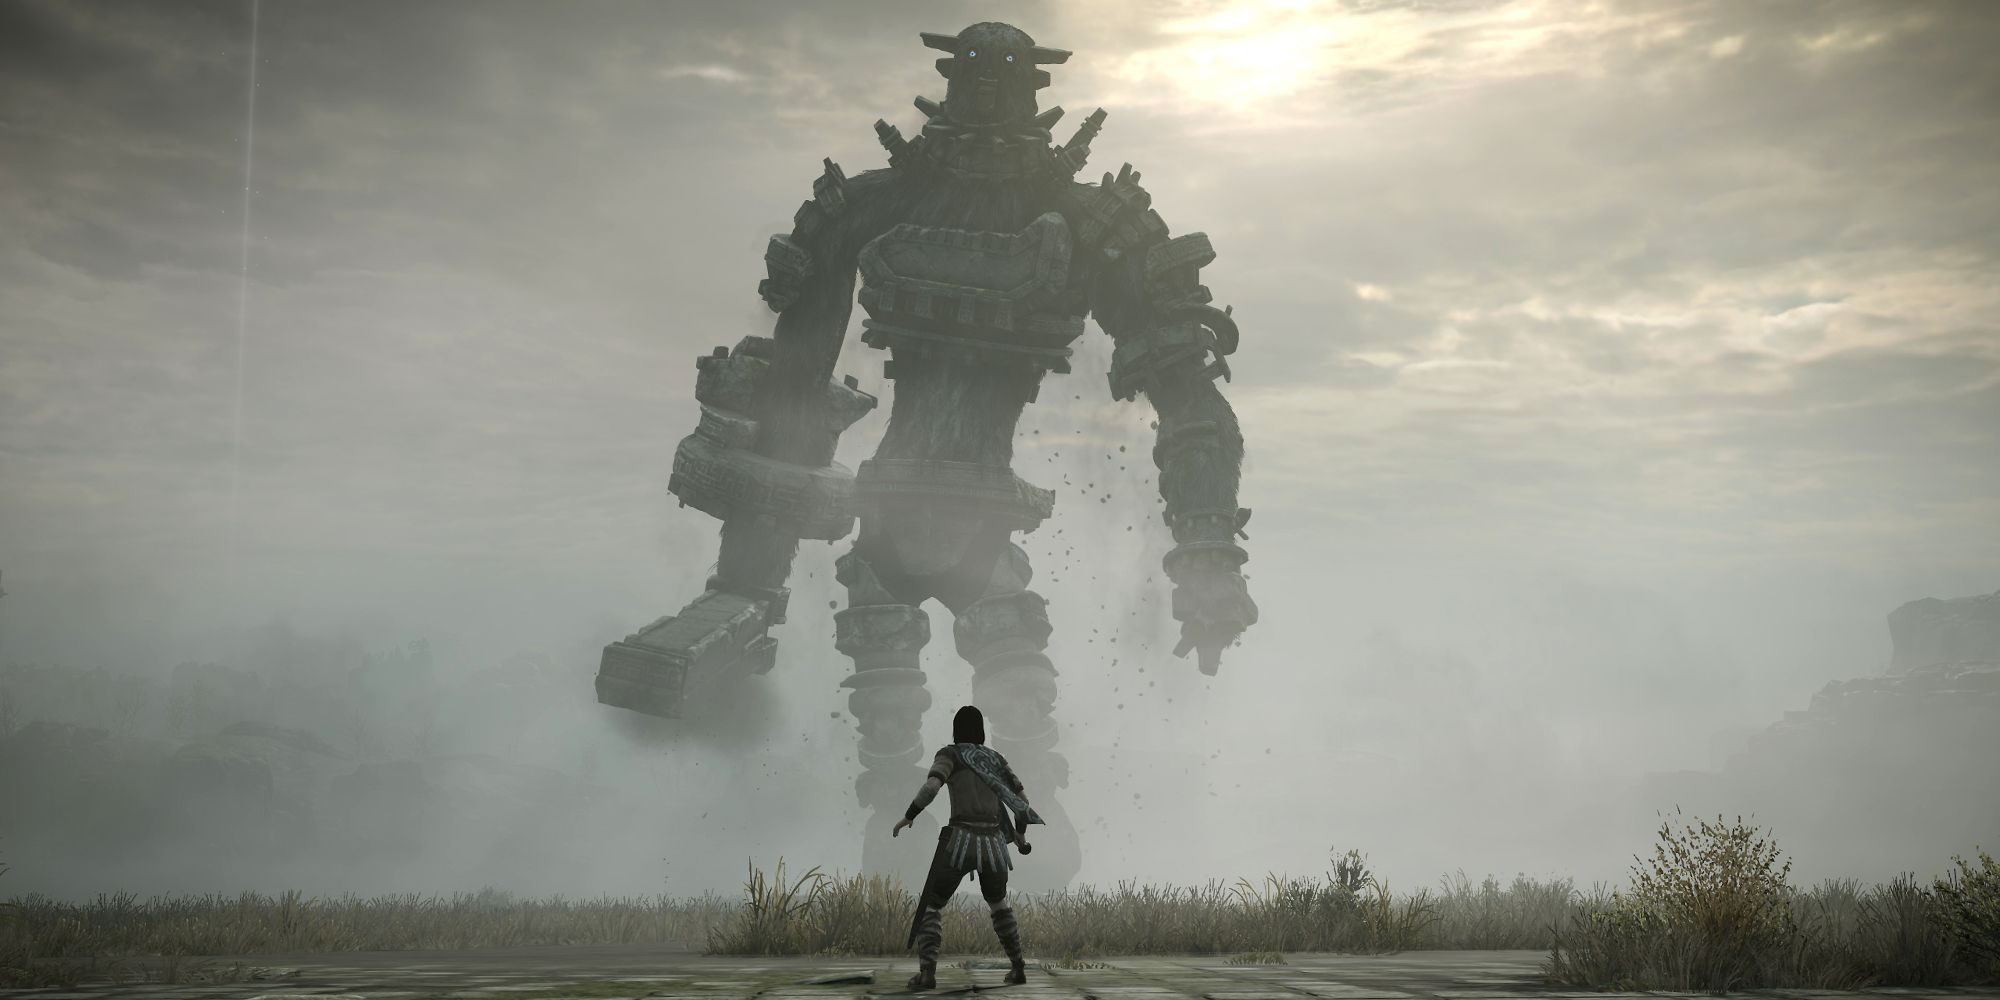 Shadow Of The Colossus, The Last Guardian Developer Teases New Game